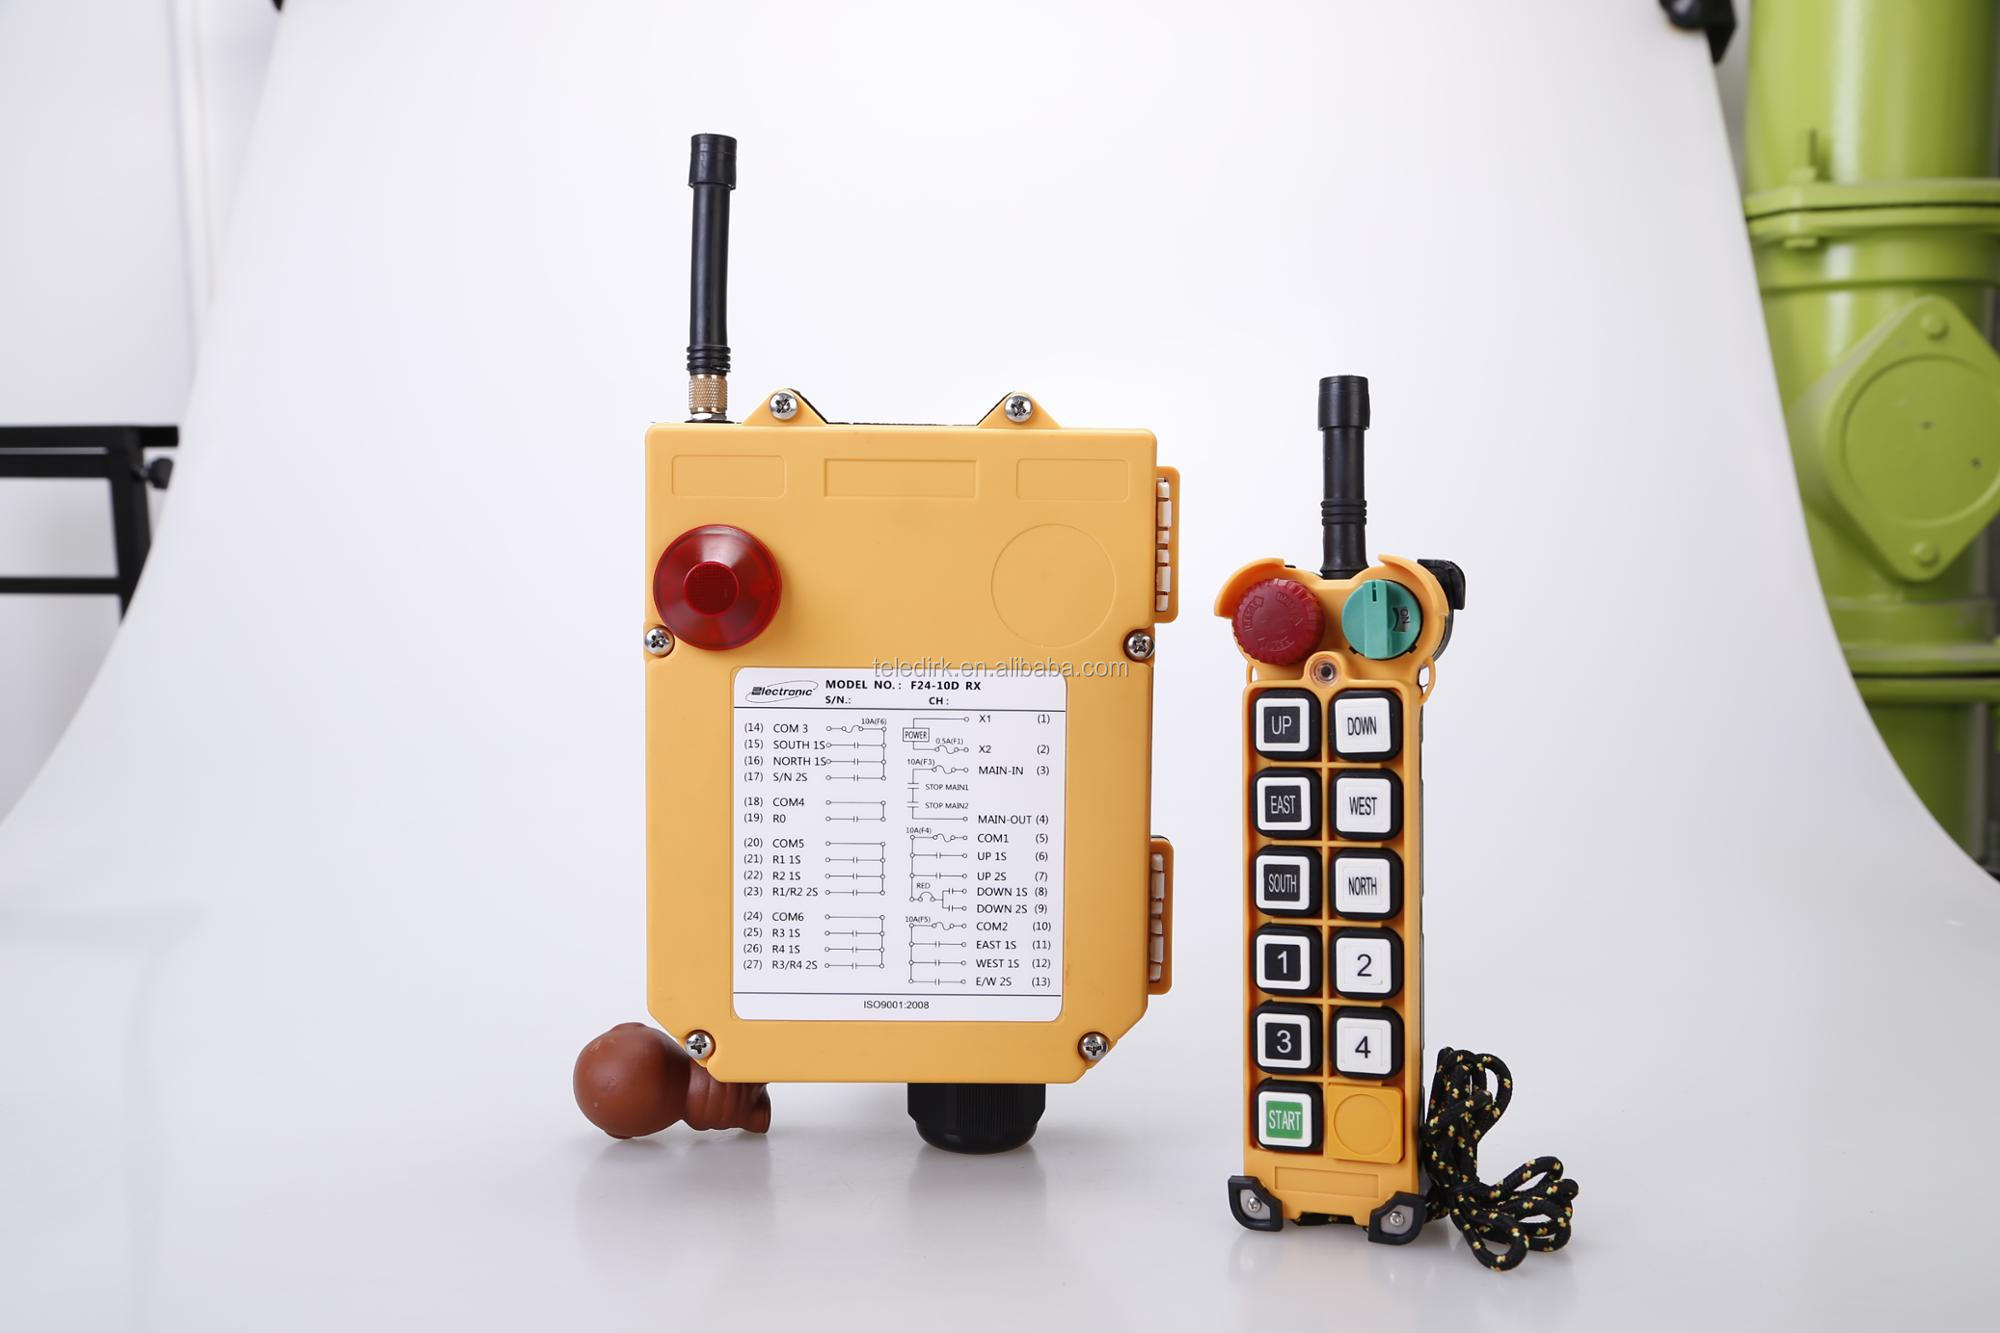 Henan Dirk electronic F24-10D 380V Industrial Wireless Crane push buttons Remote Controls For winch